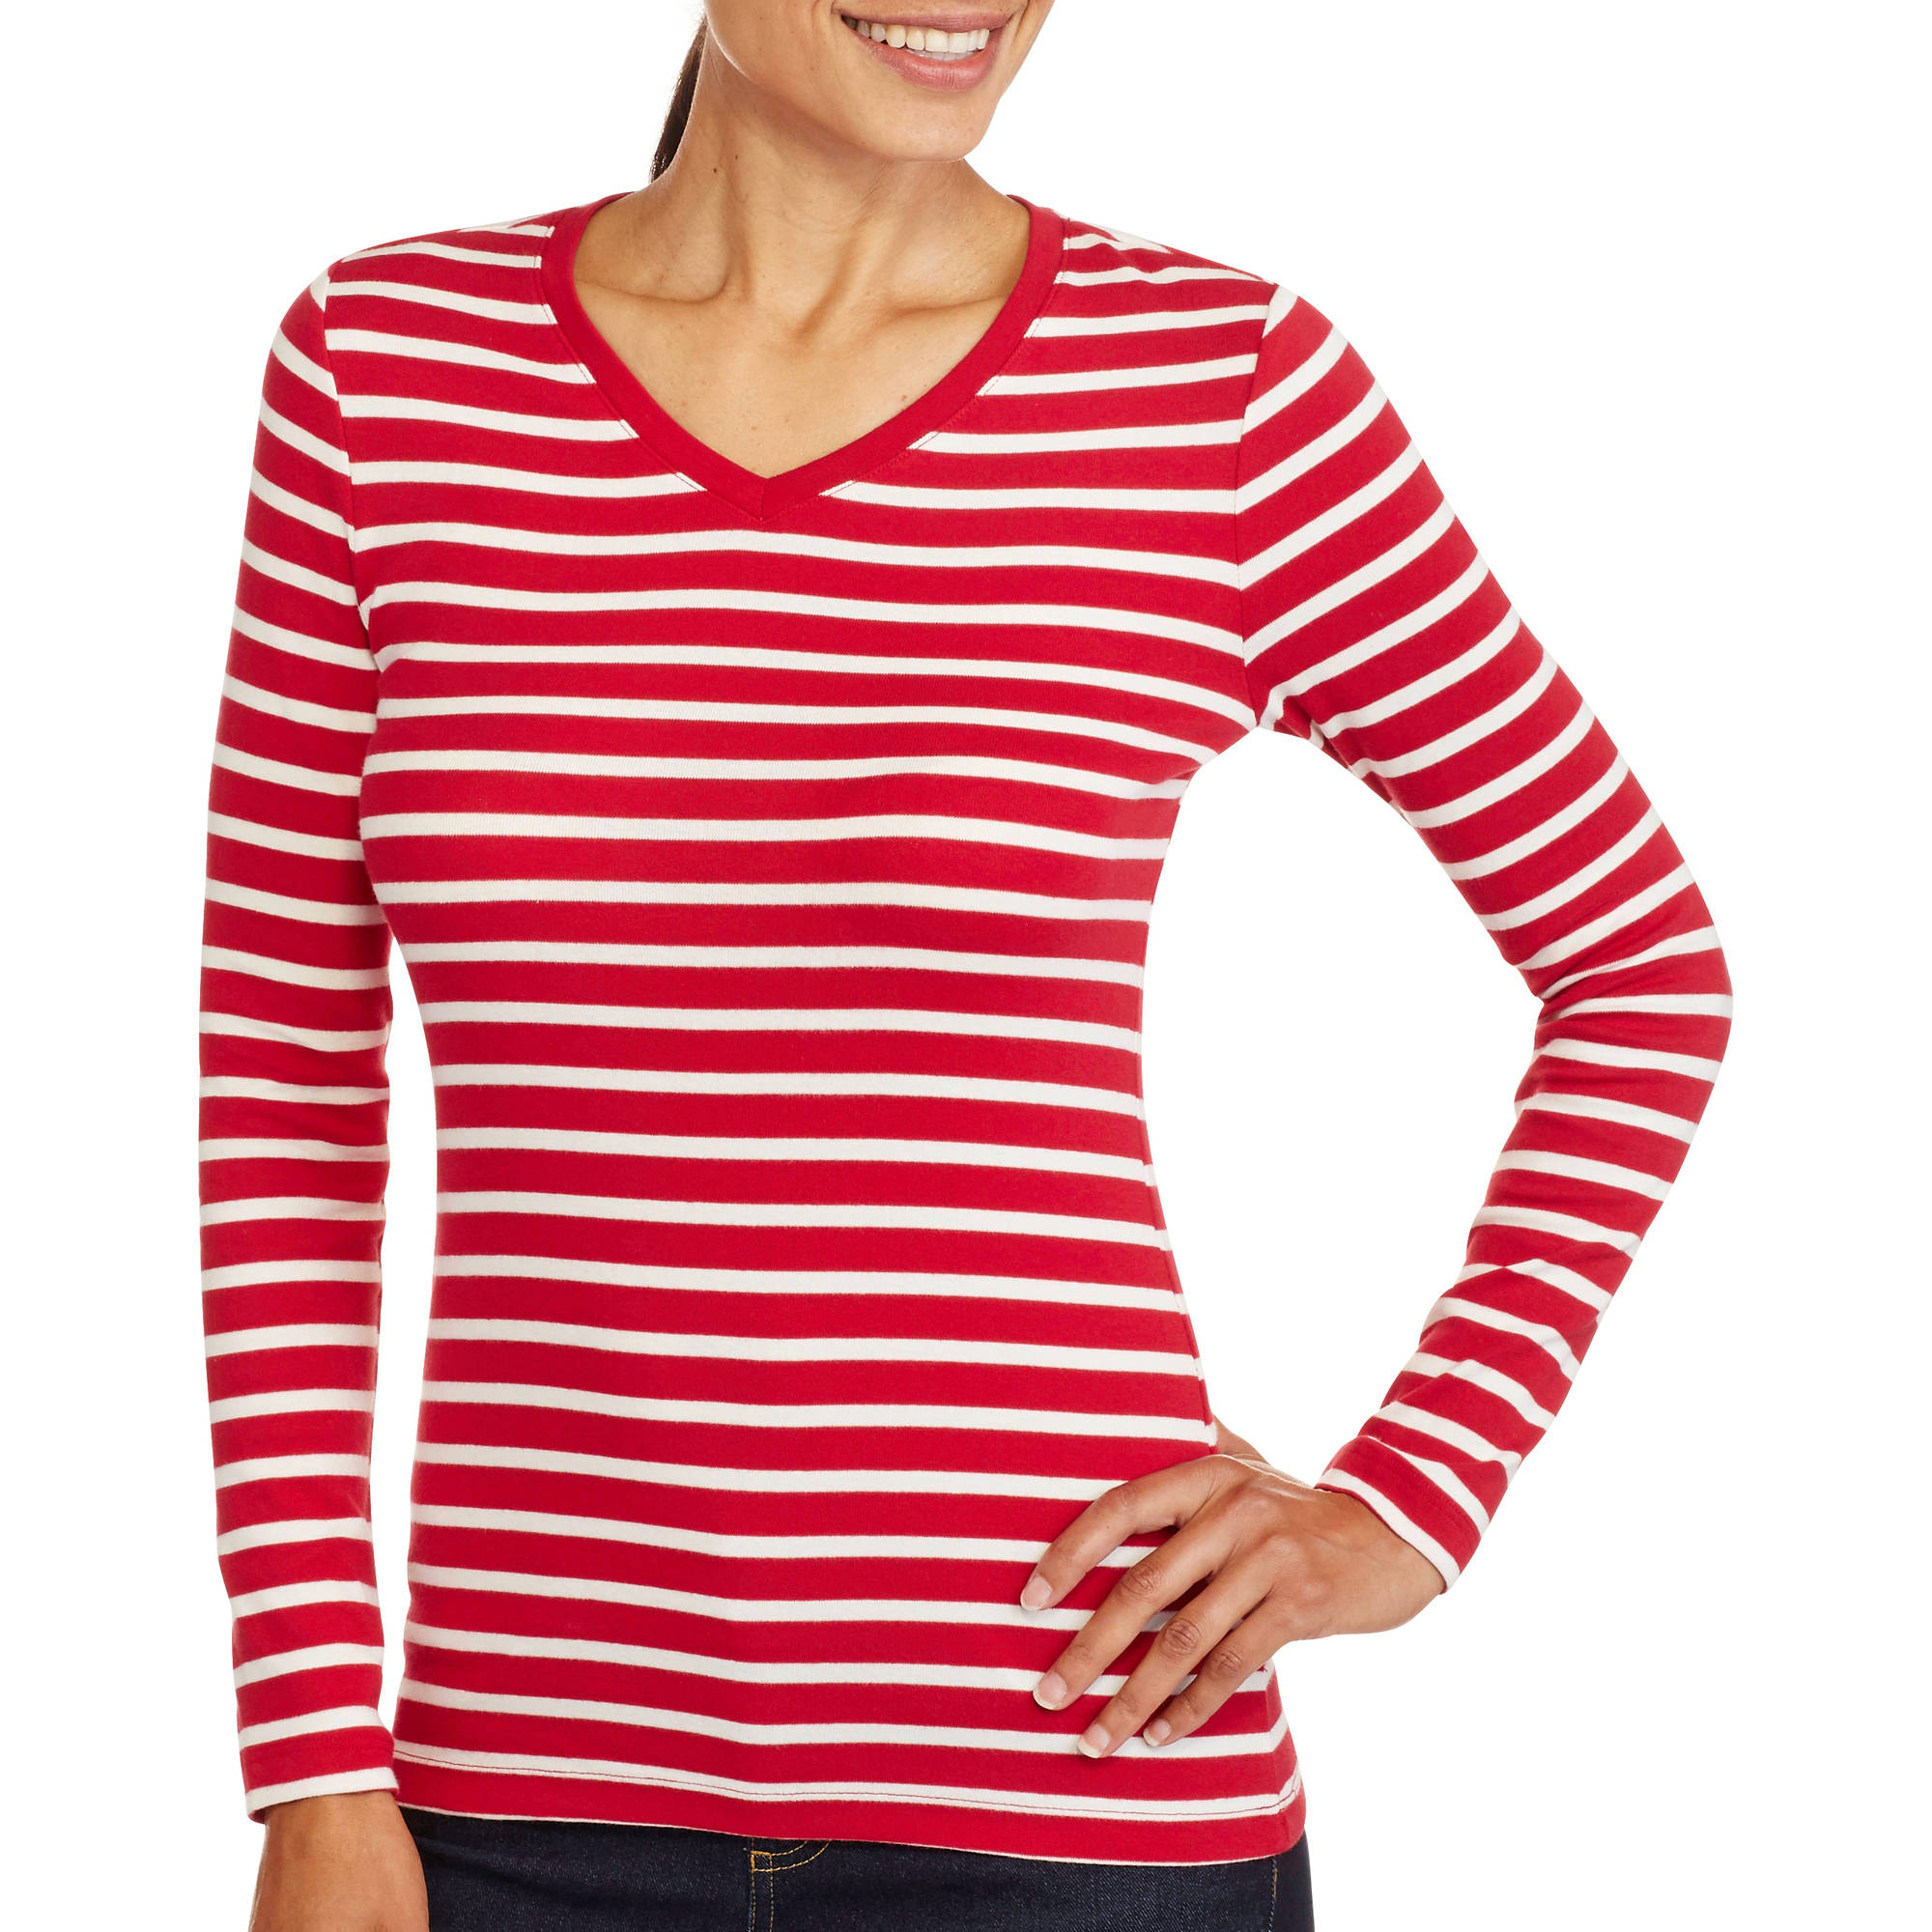 Faded Glory Women's Essential Long Sleeve V-Neck T-Shirt - Walmart.com